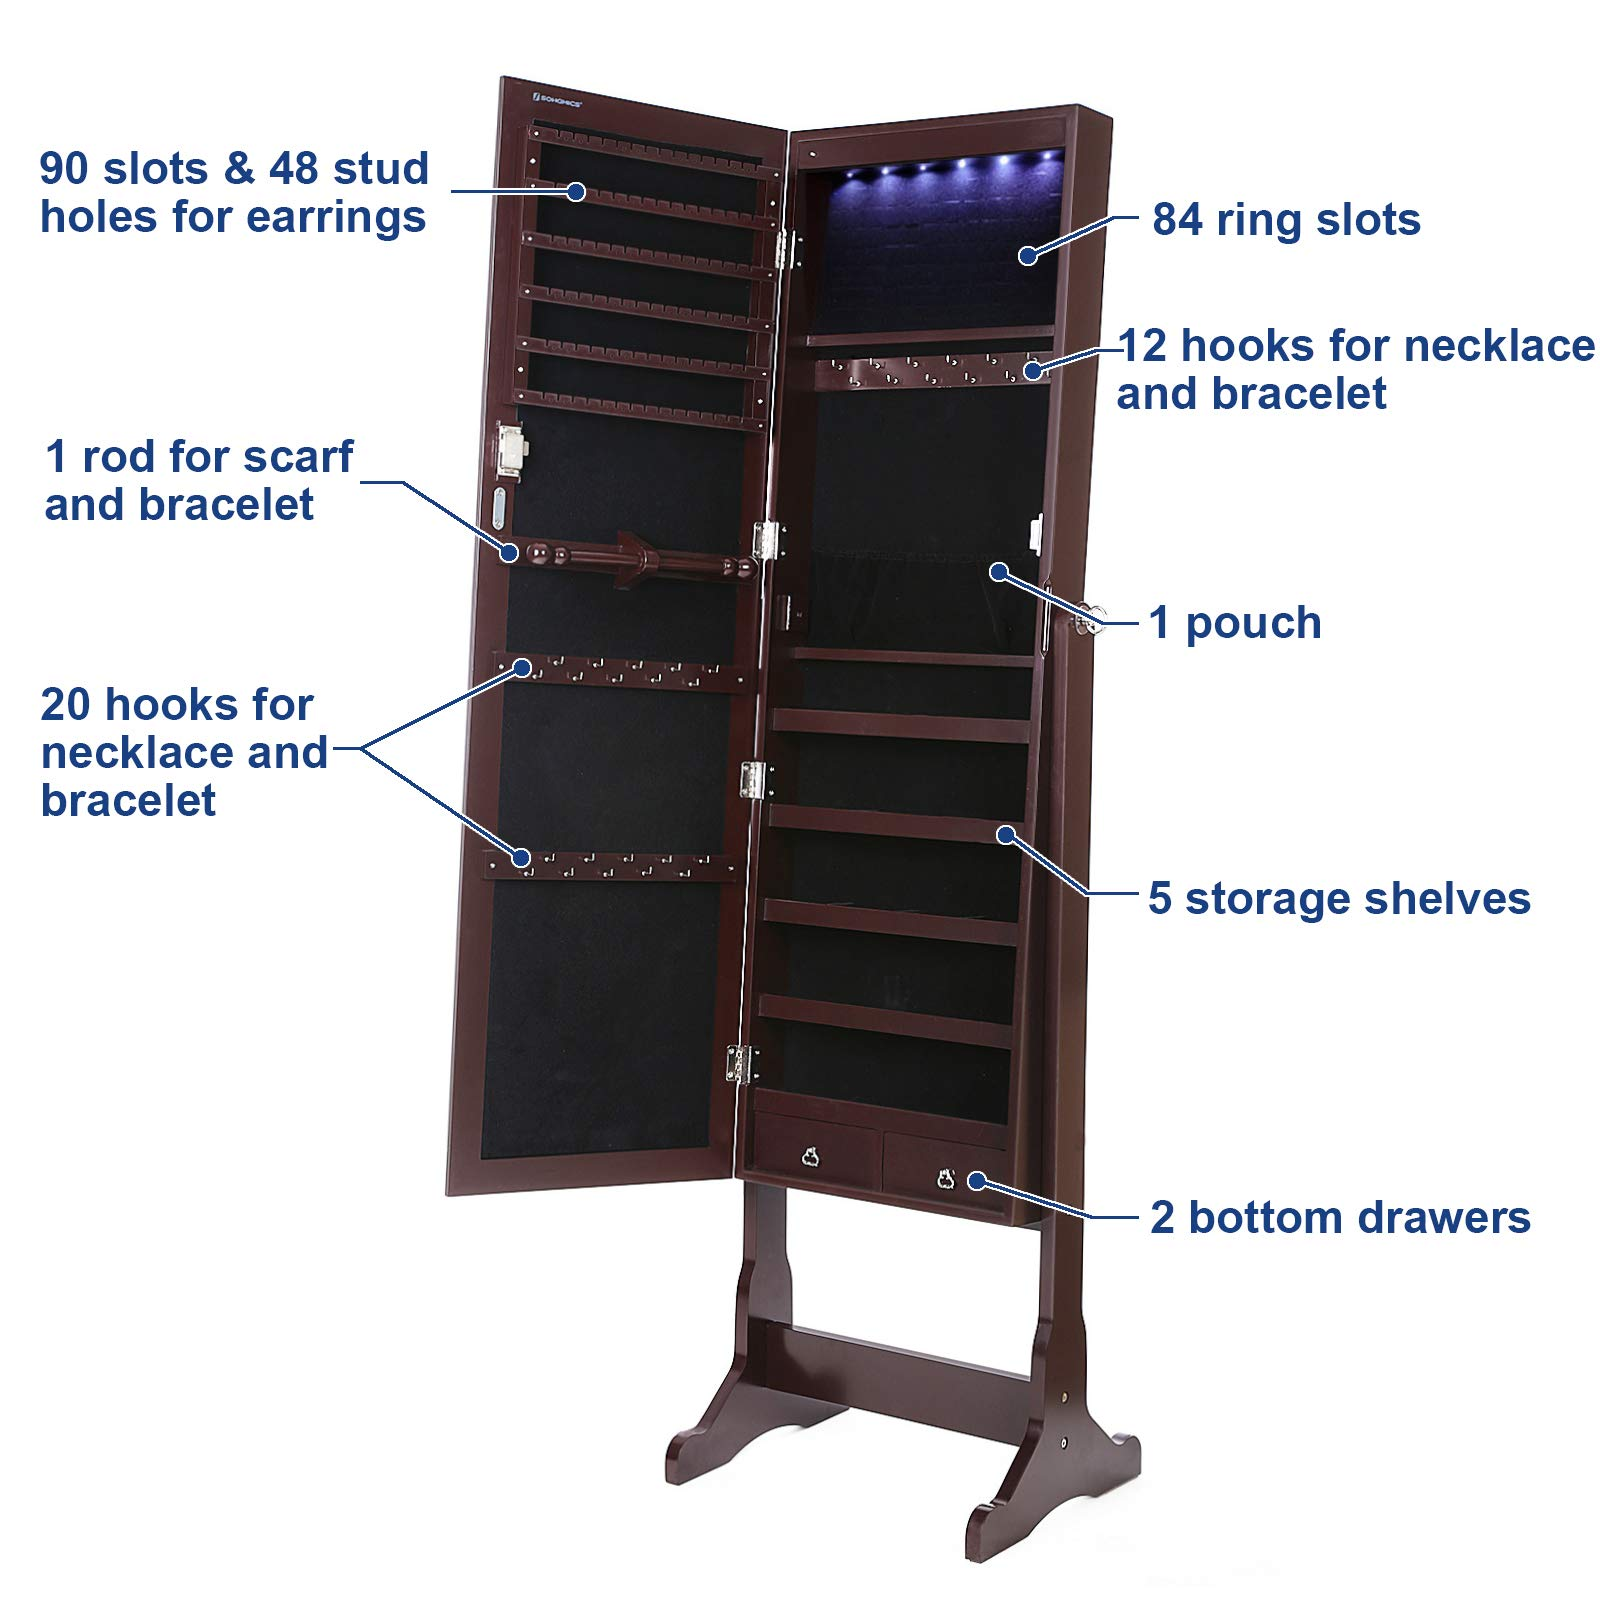 SONGMICS 6 LEDs Mirror Jewelry Cabinet Lockable Standing Mirrored Jewelry Armoire Organizer 2 Drawers Brown Mother's Day Gift UJJC94K by SONGMICS (Image #6)